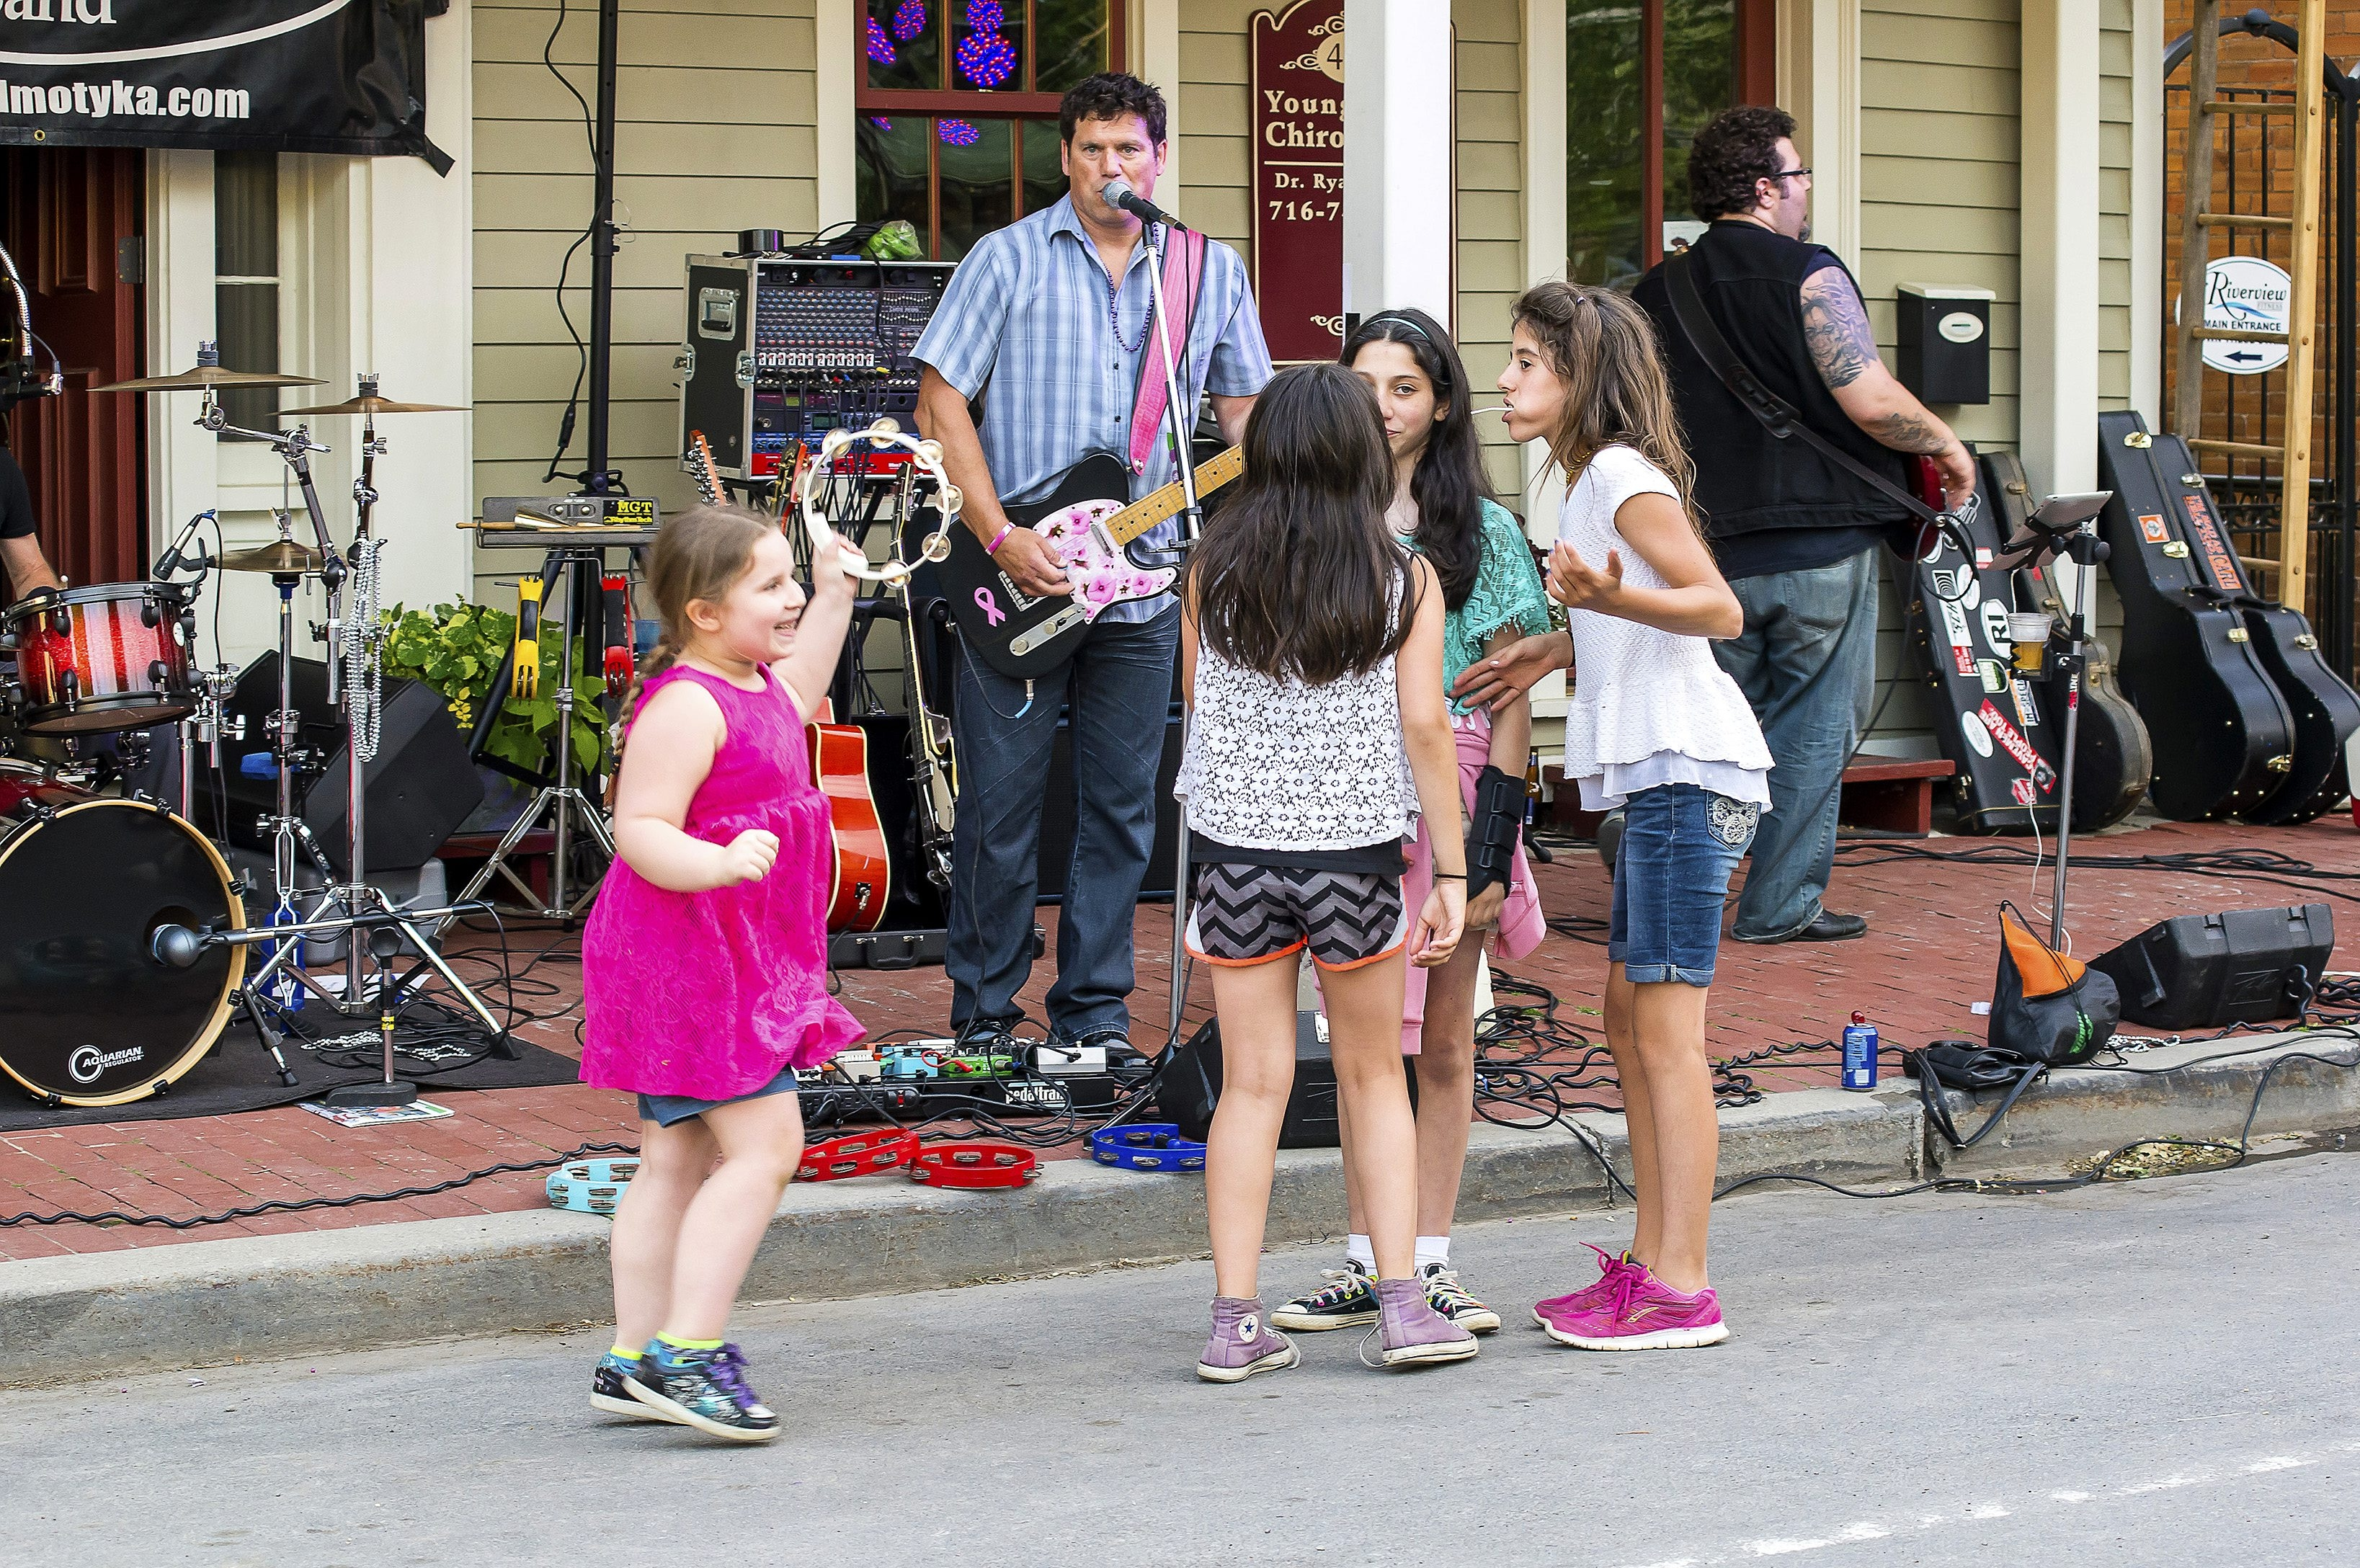 Youngstown's seventh annual Street Dance will feature family-friendly activities, including a classic car show, a bounce house and face painting.